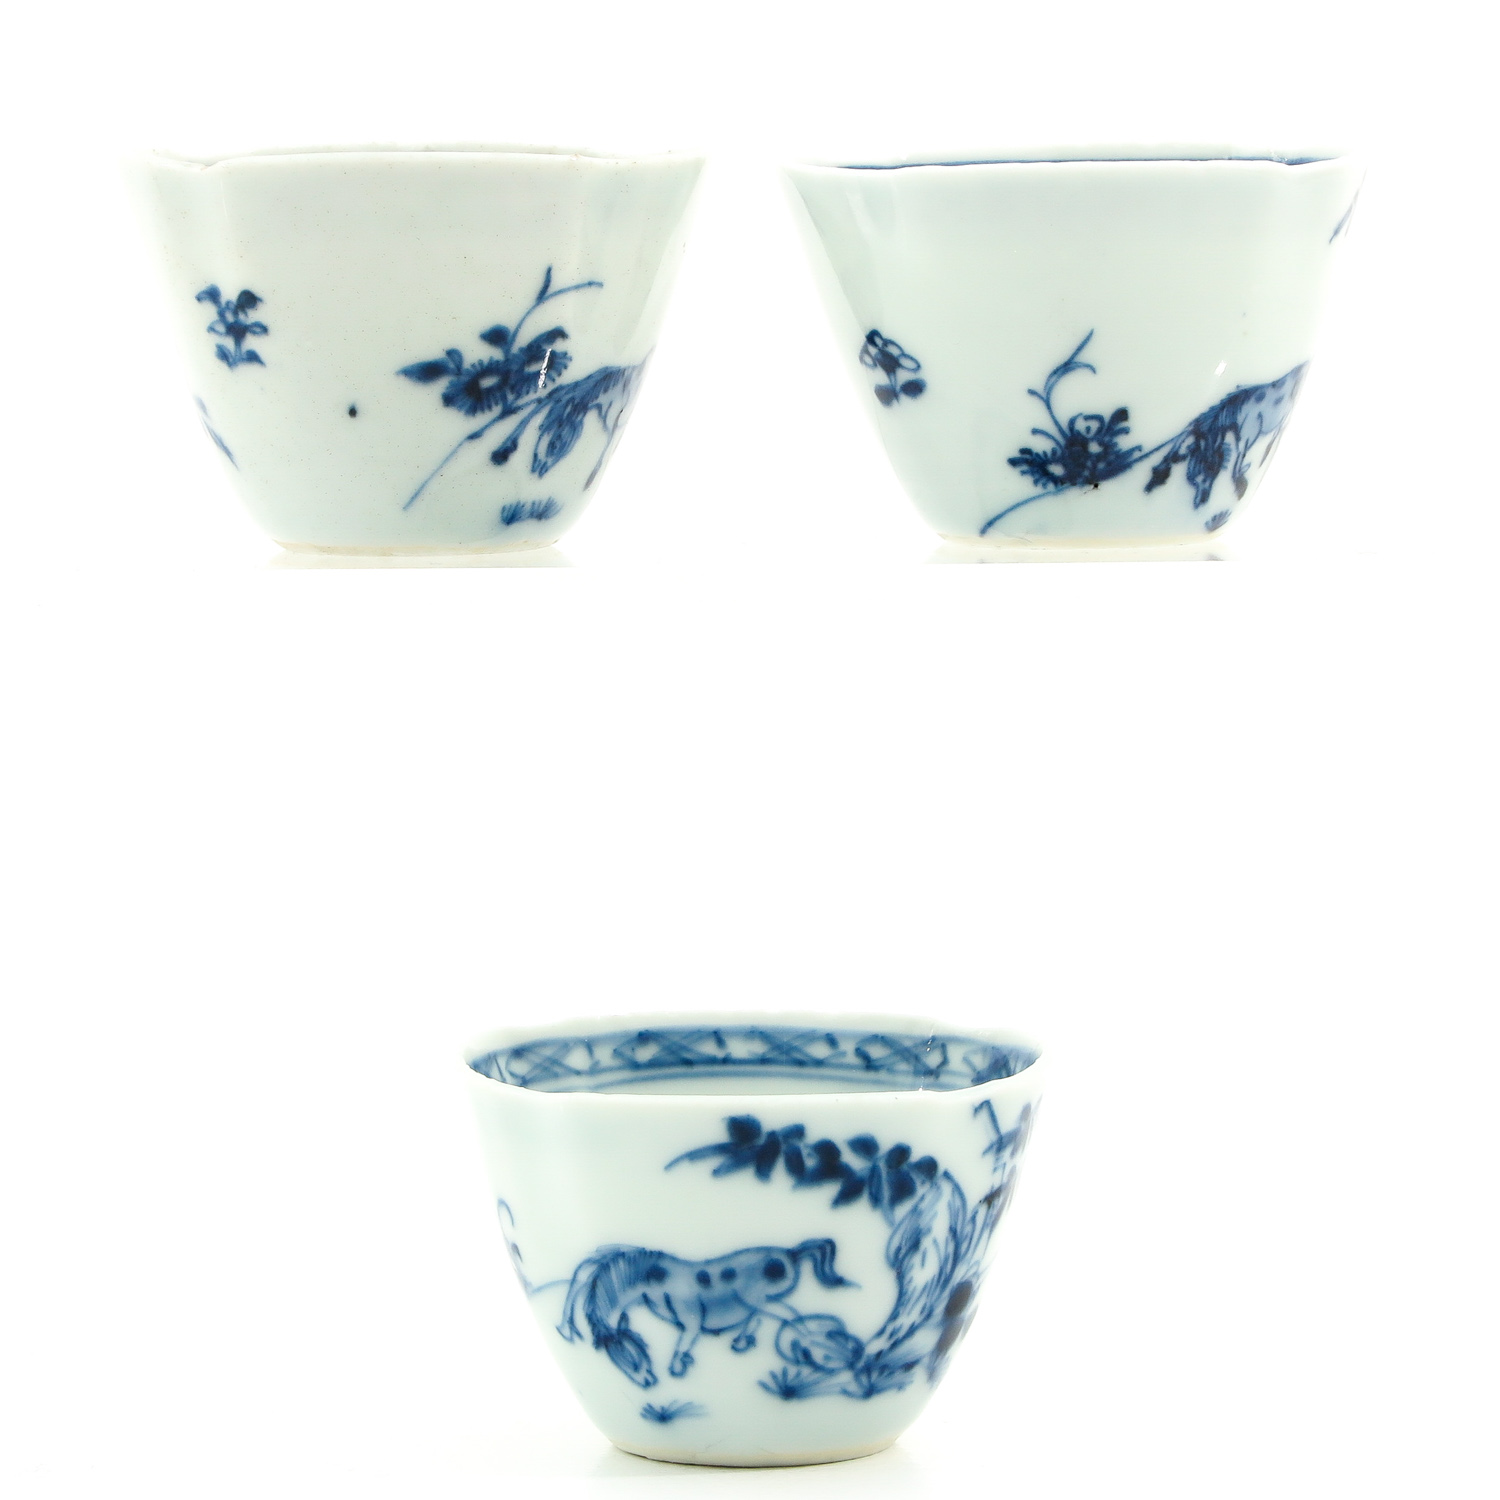 A Collection of 3 Cups and Saucers - Image 4 of 9